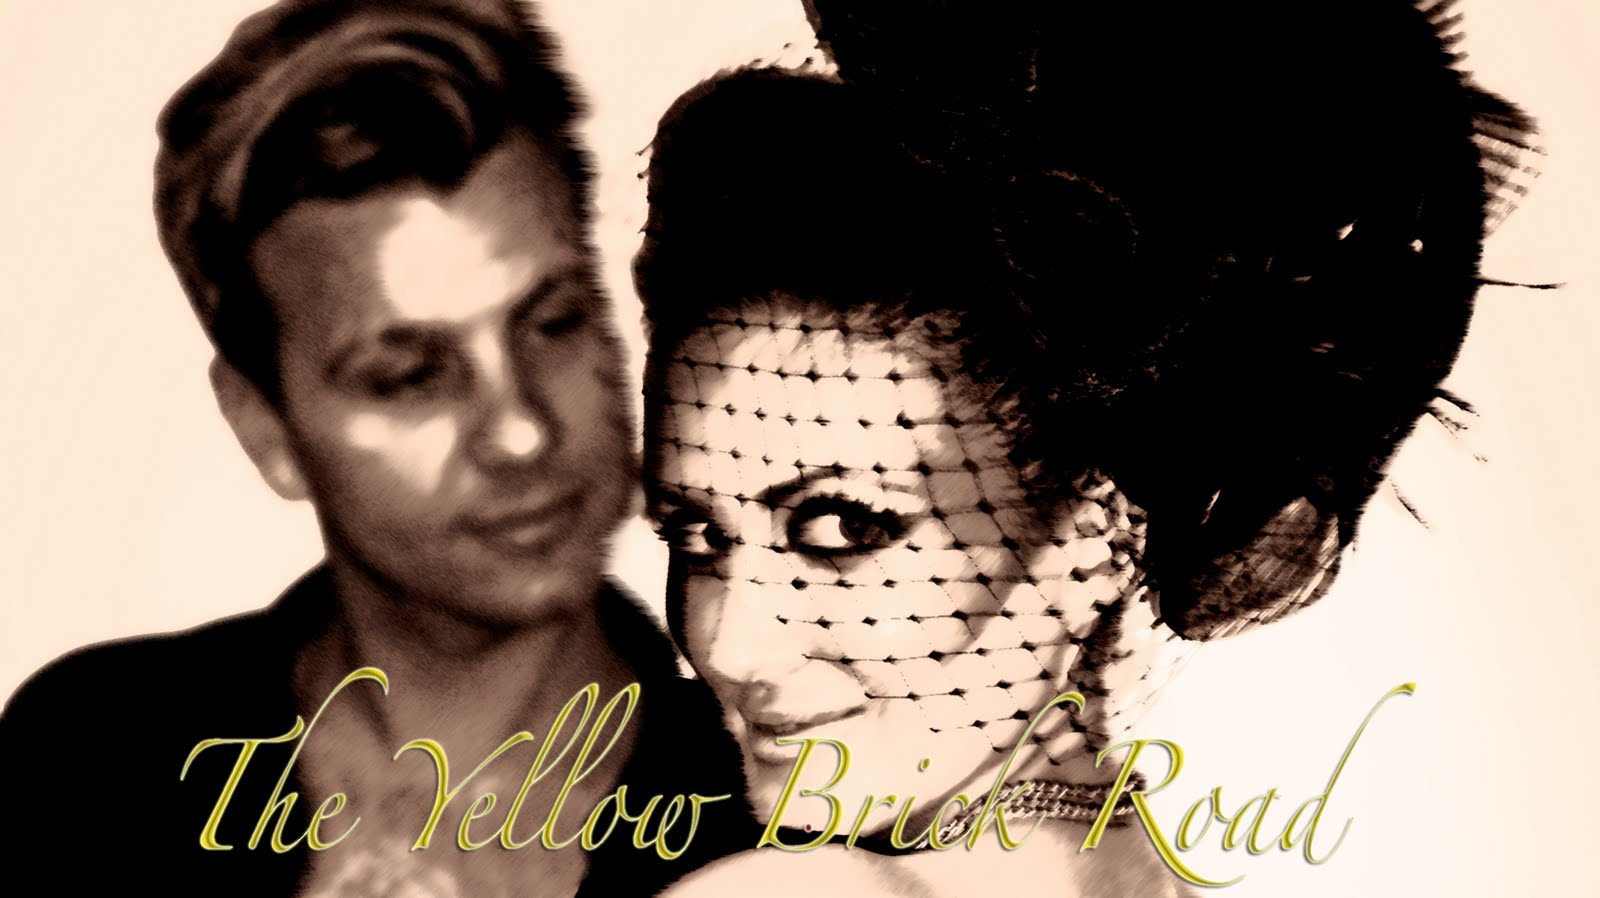 ♥ the yellow brick road